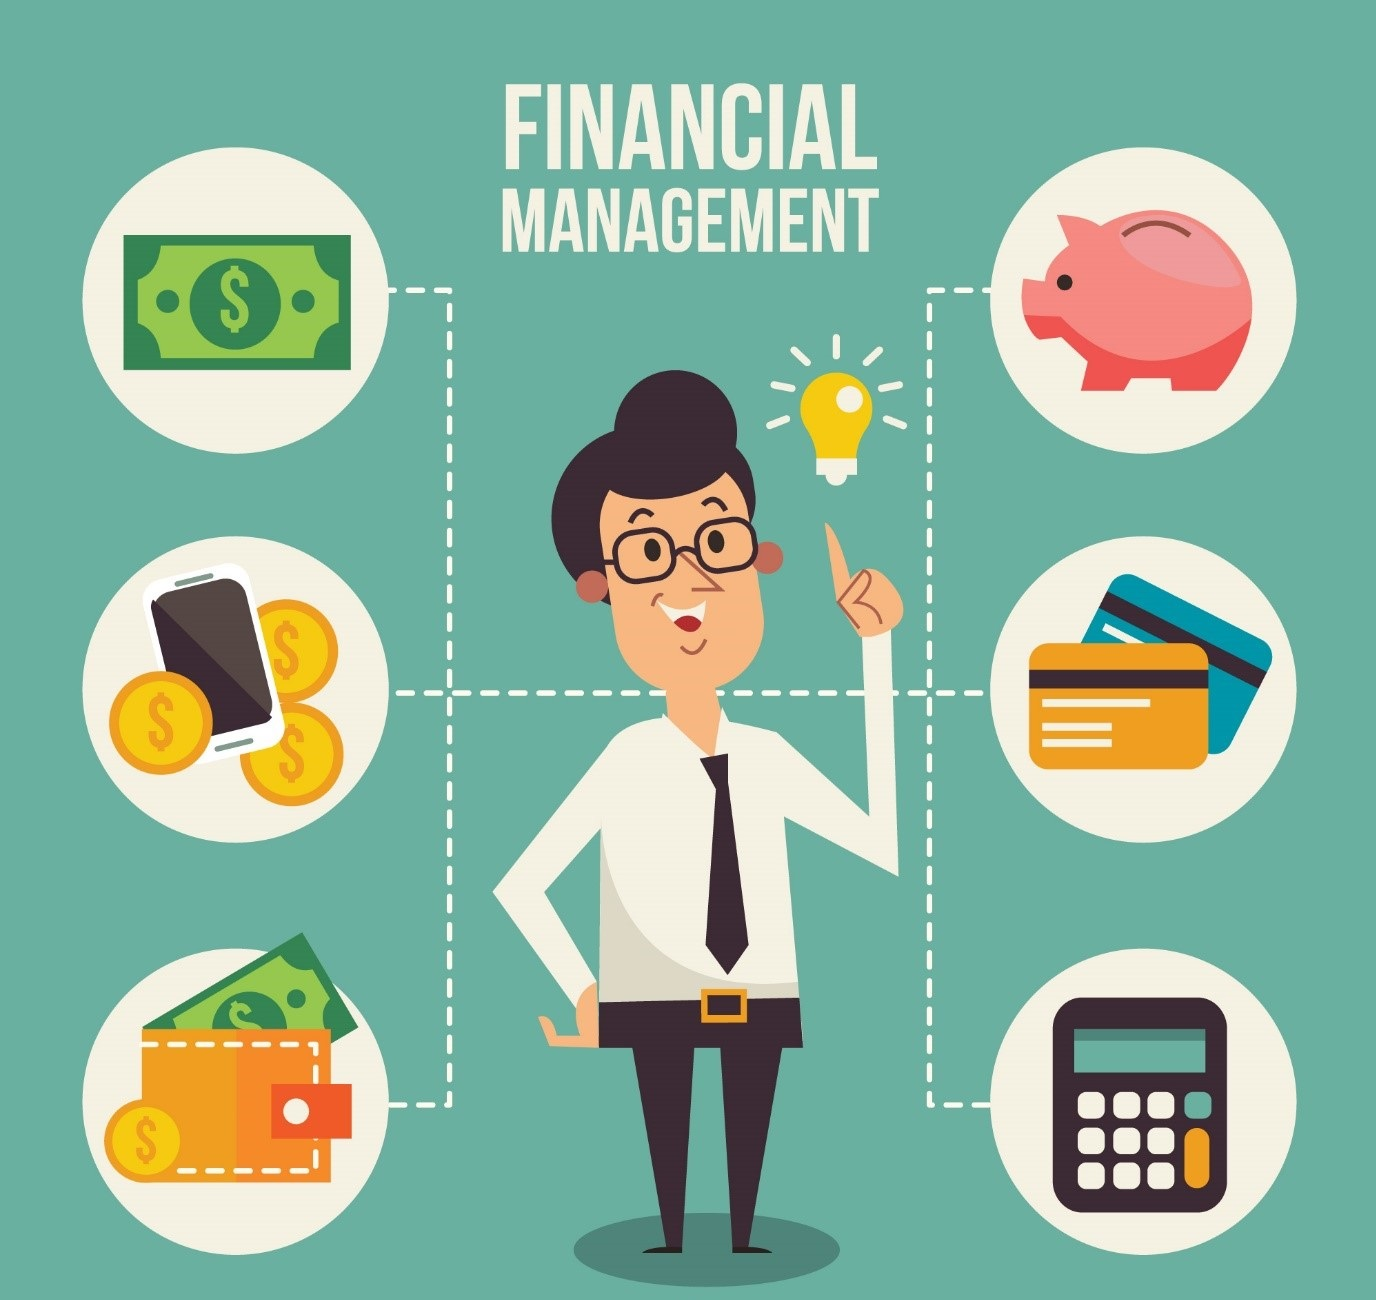 Financial Management: 4 Free Financial Services To Take Advantage Of